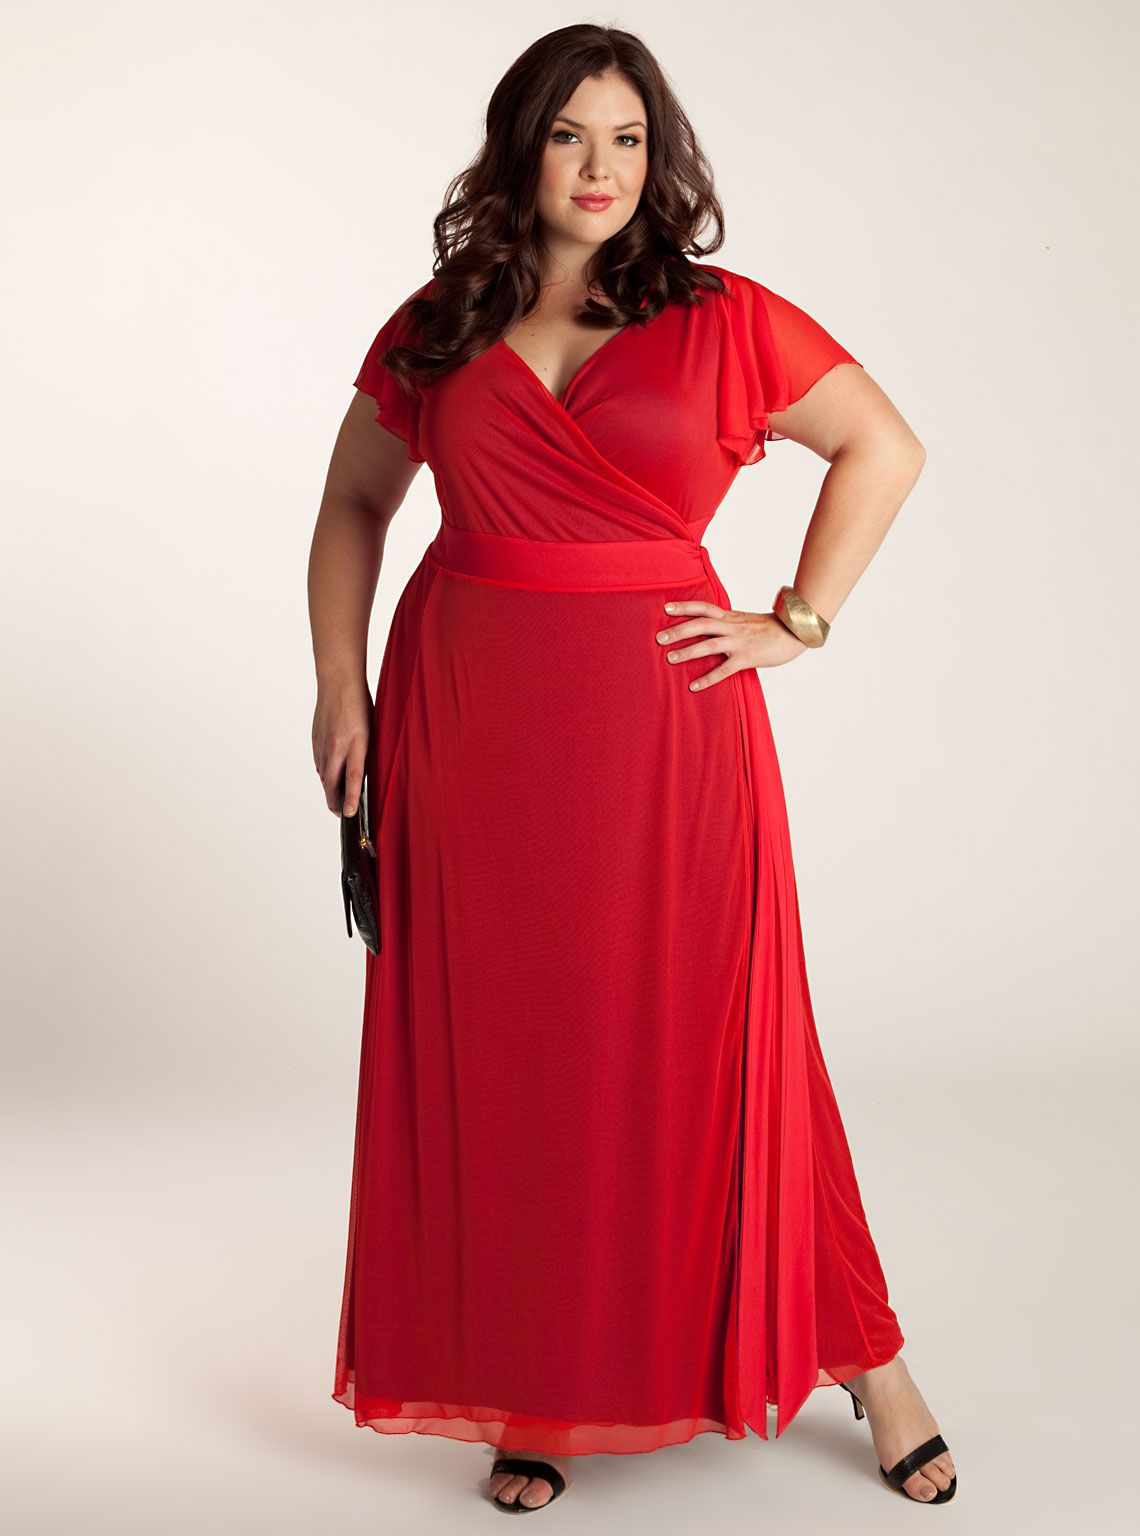 Plus Size Woman Clothing, High Fashion Dresses for the ...